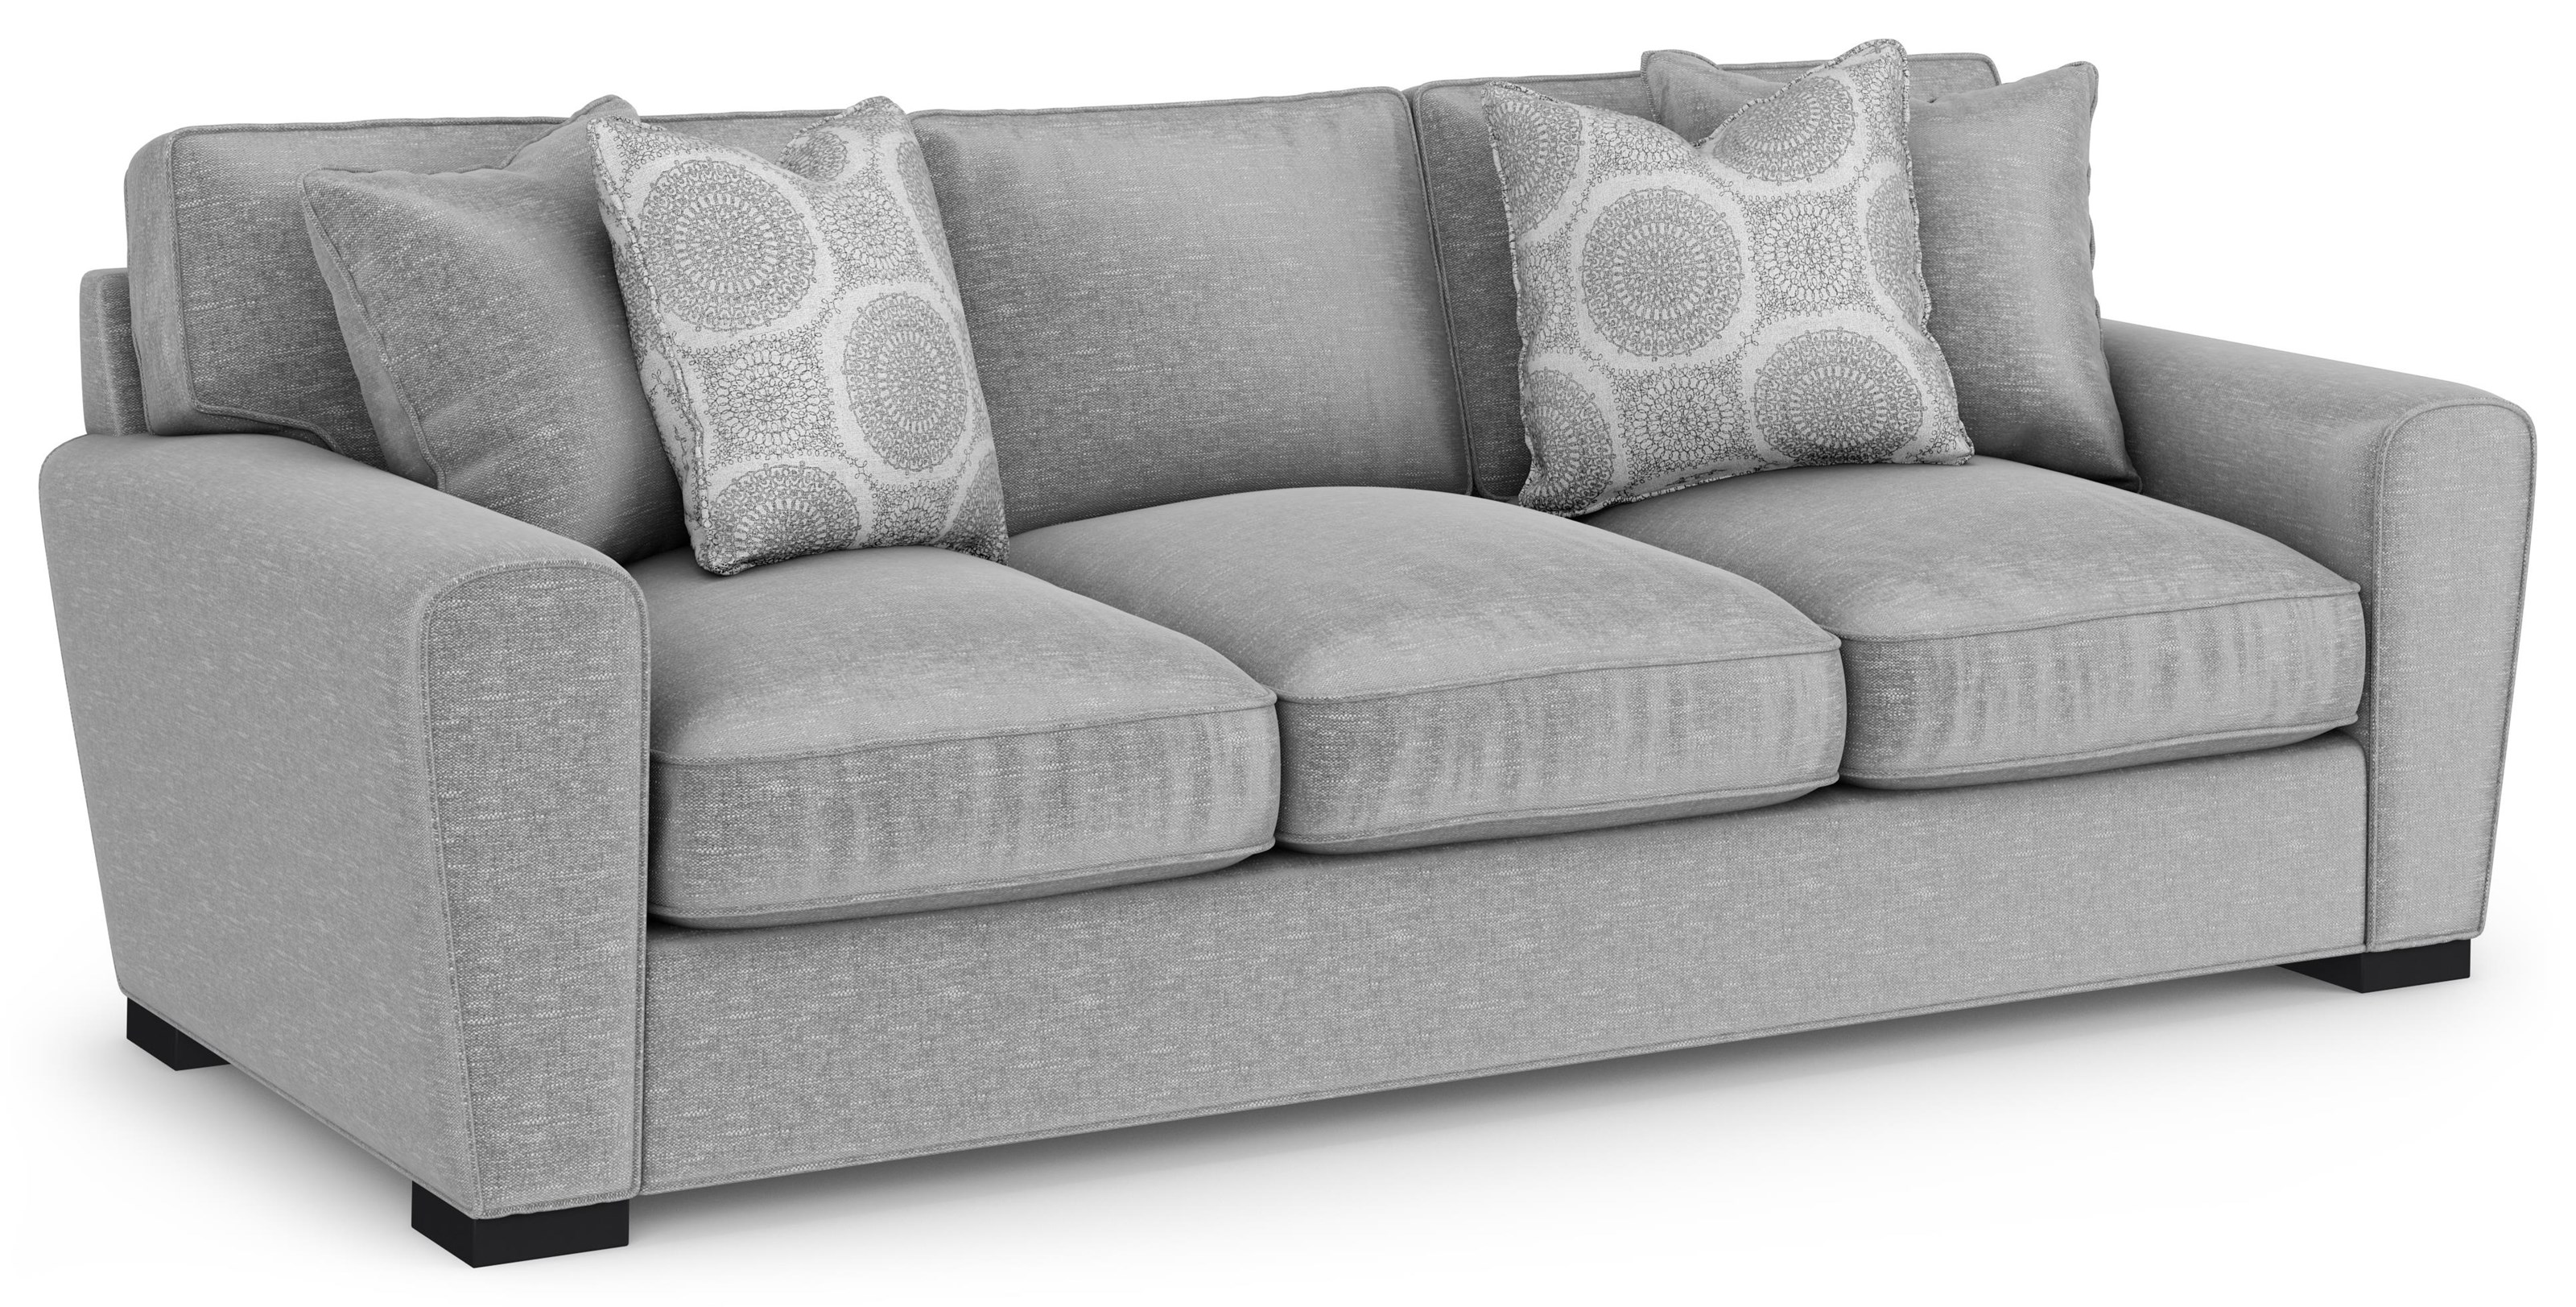 282 Monroe Sofa by Sunset Home at Walker's Furniture